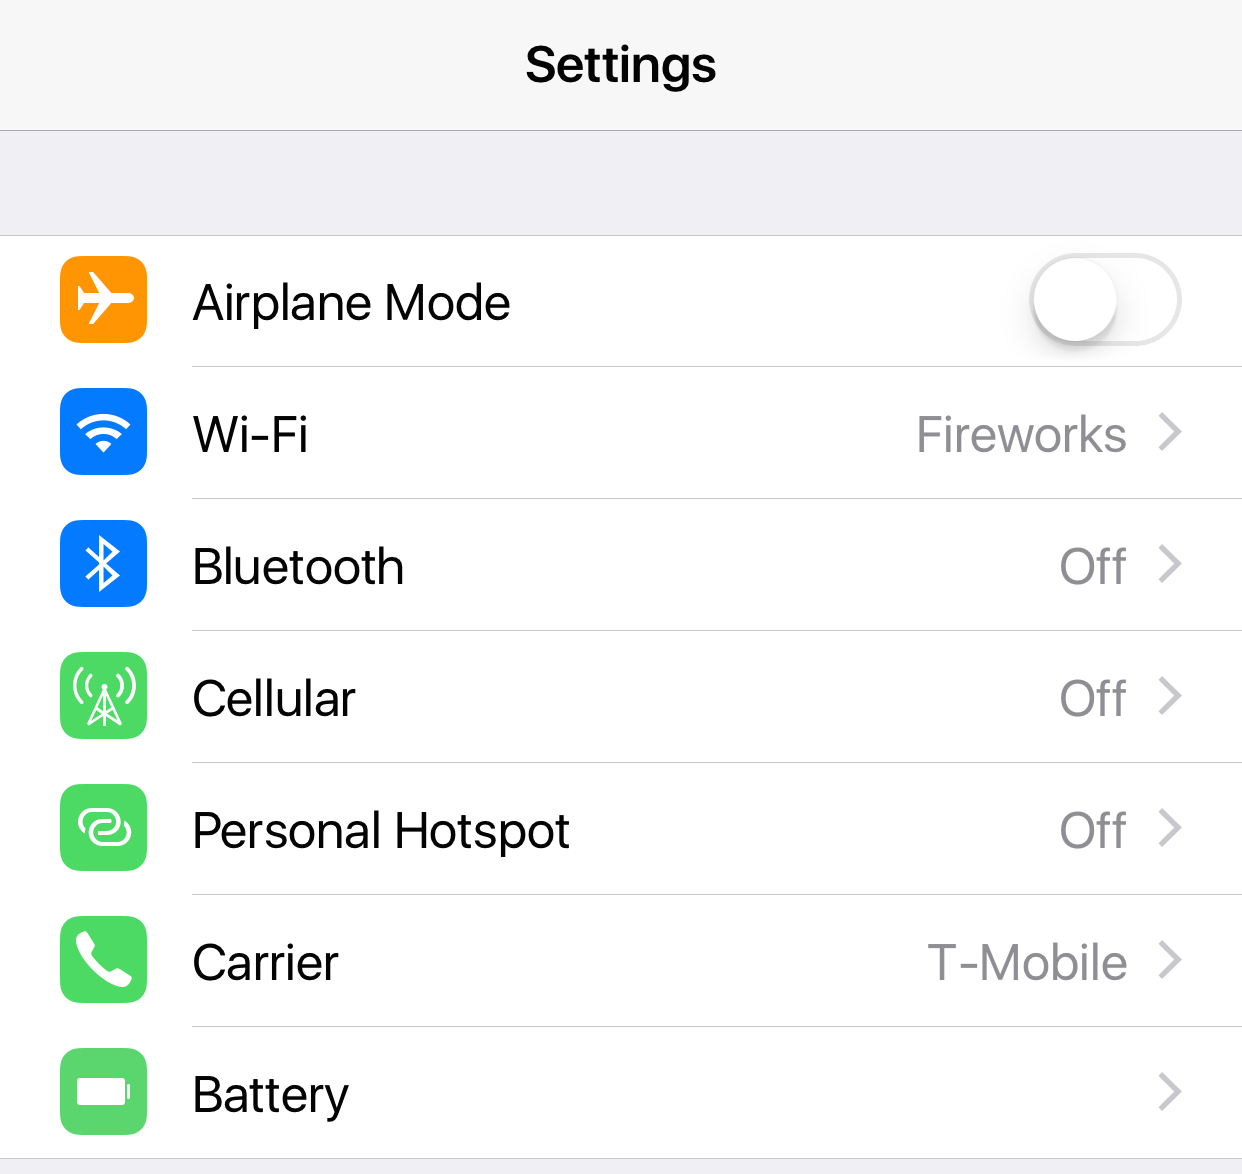 Power Saver Mode Settings